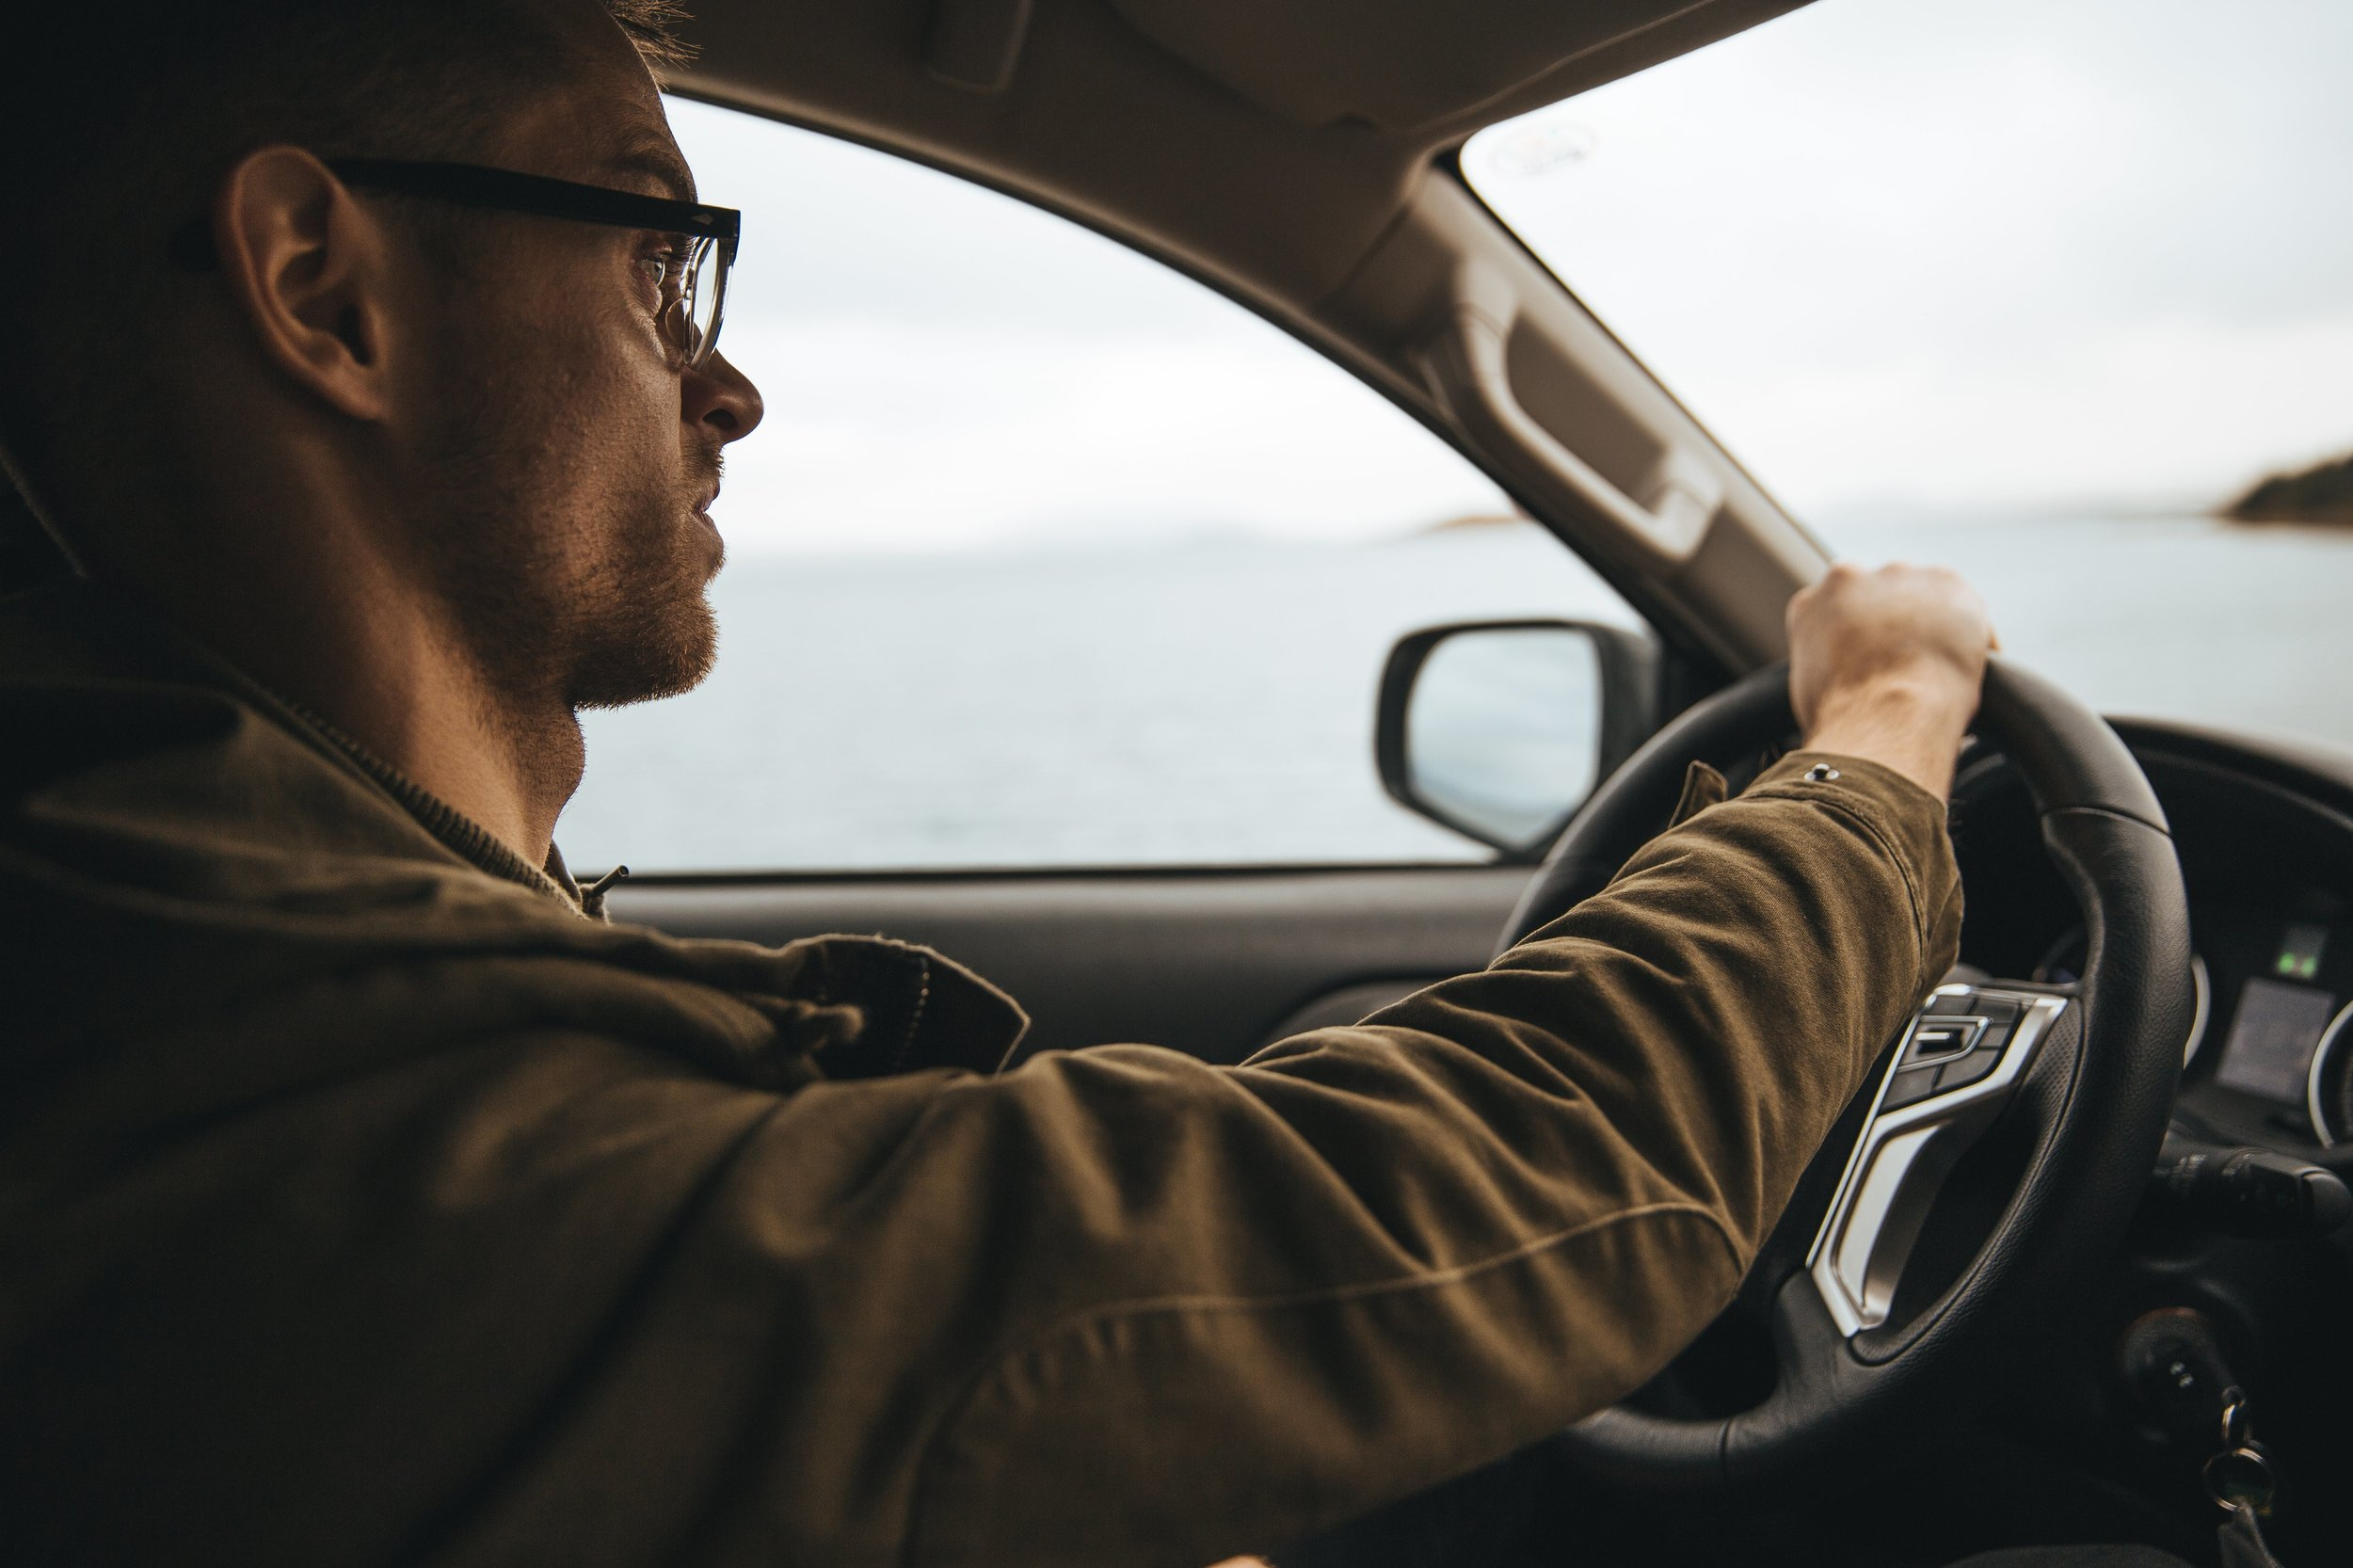 man-with-glasses-driving_4460x4460.jpg